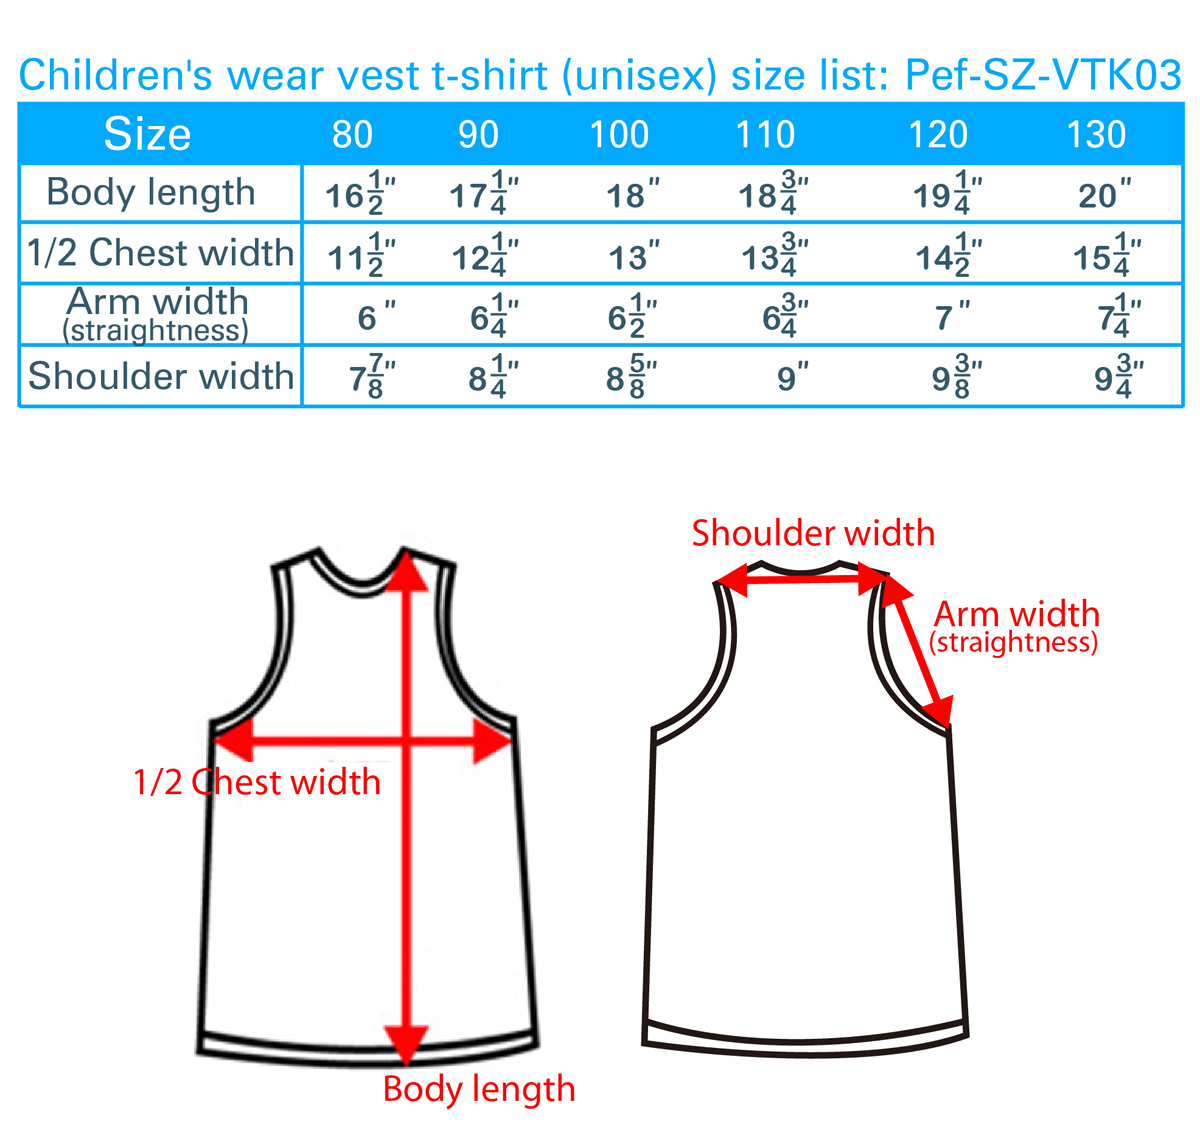 size-list-vest-t-shirt-unisex-childlren's-wear-20100131